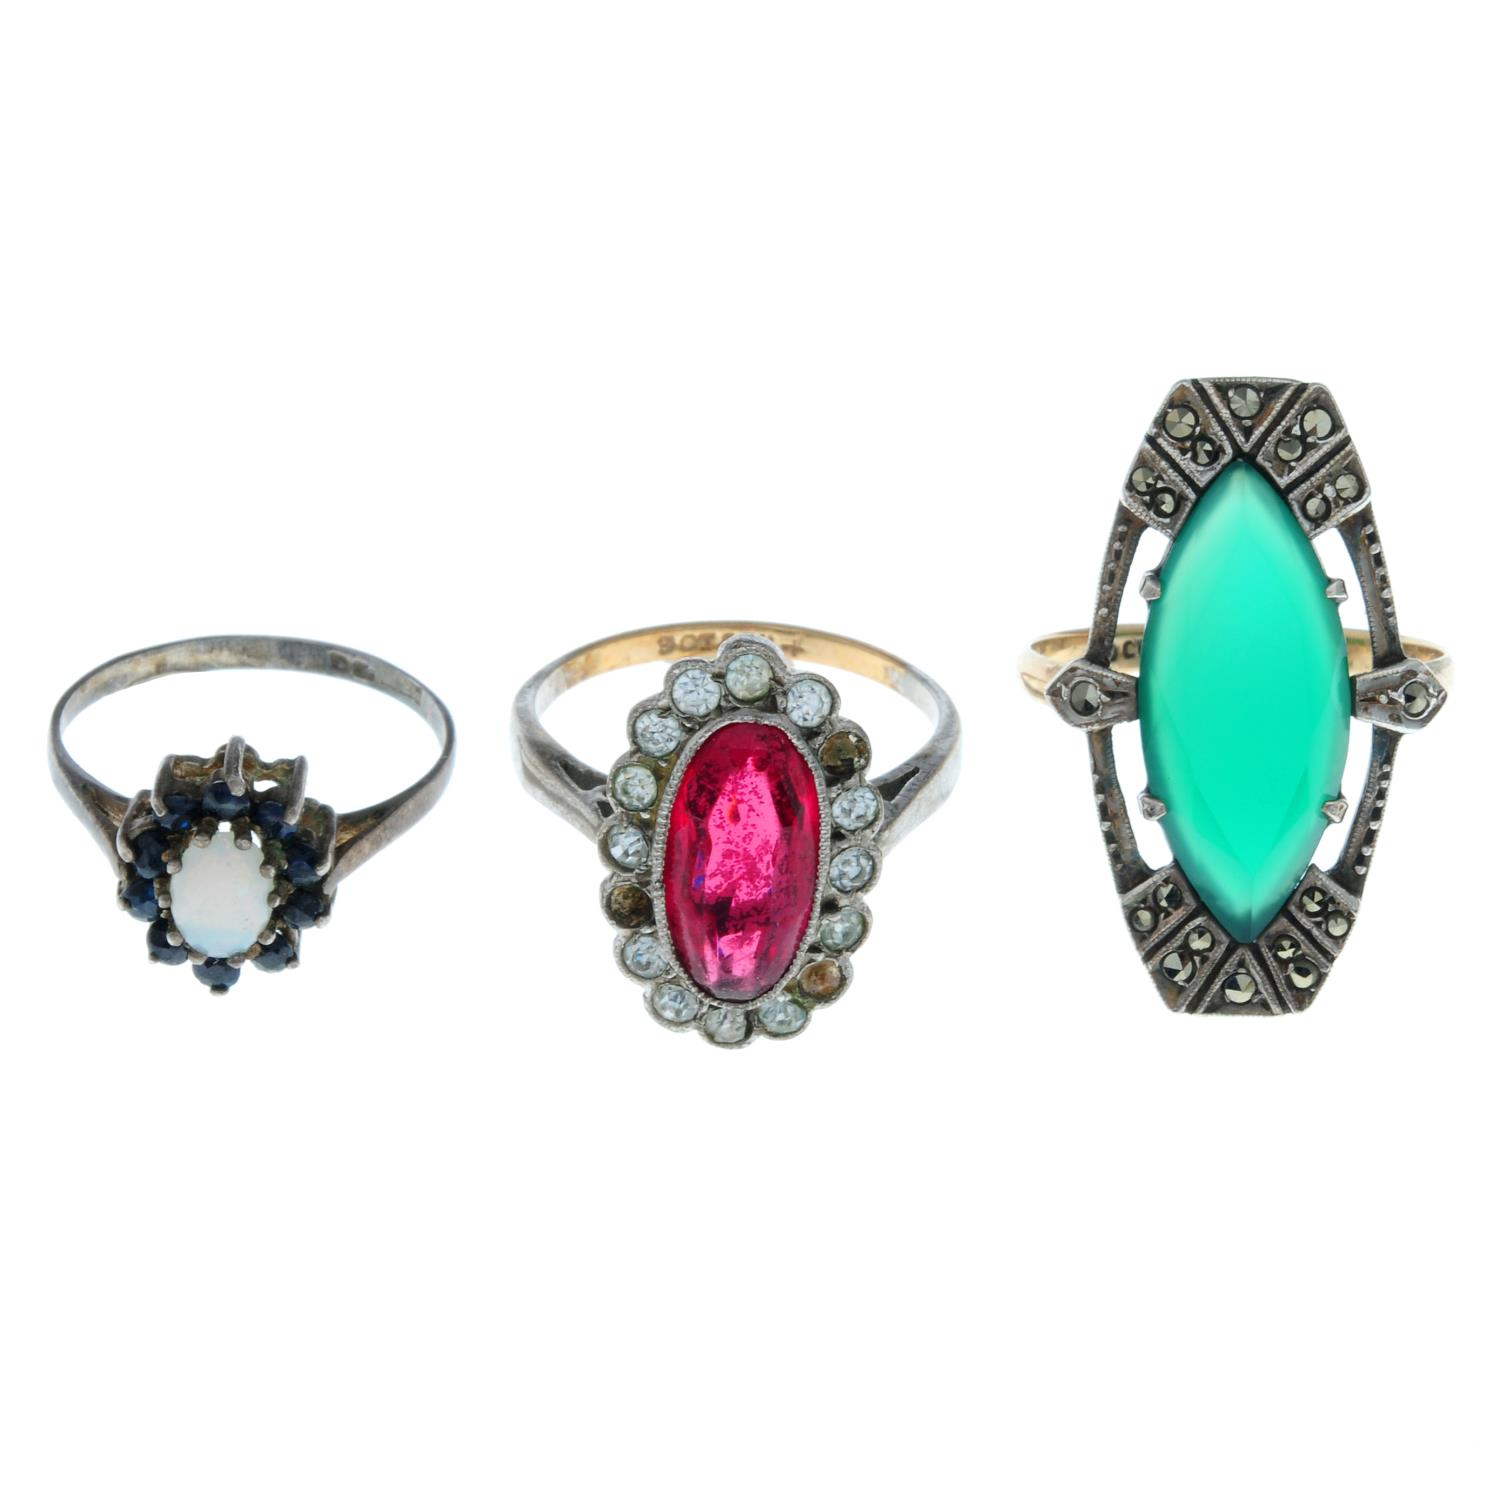 Twelve early 20th century and later rings, to include an early 20th century garnet cluster ring. - Image 2 of 4